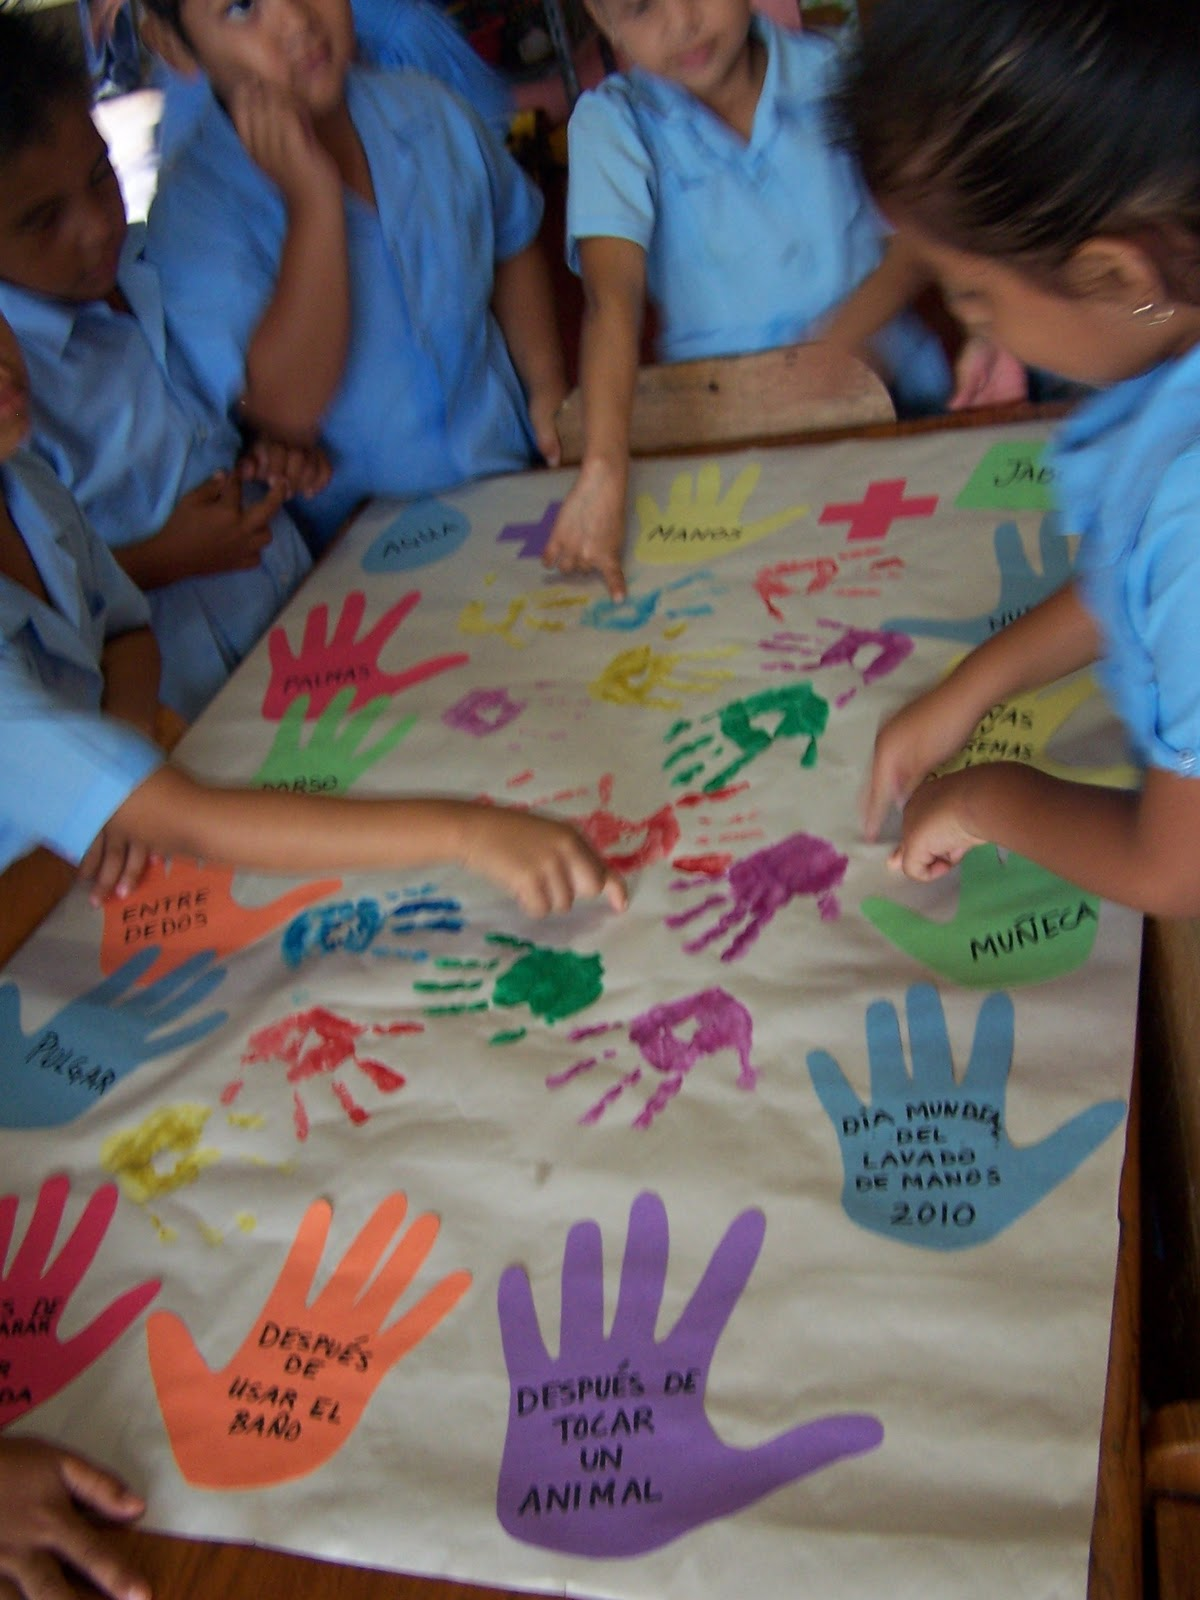 Global Hand Gestures And Their Meanings: A Whole New Adventure: Global Handwashing Day